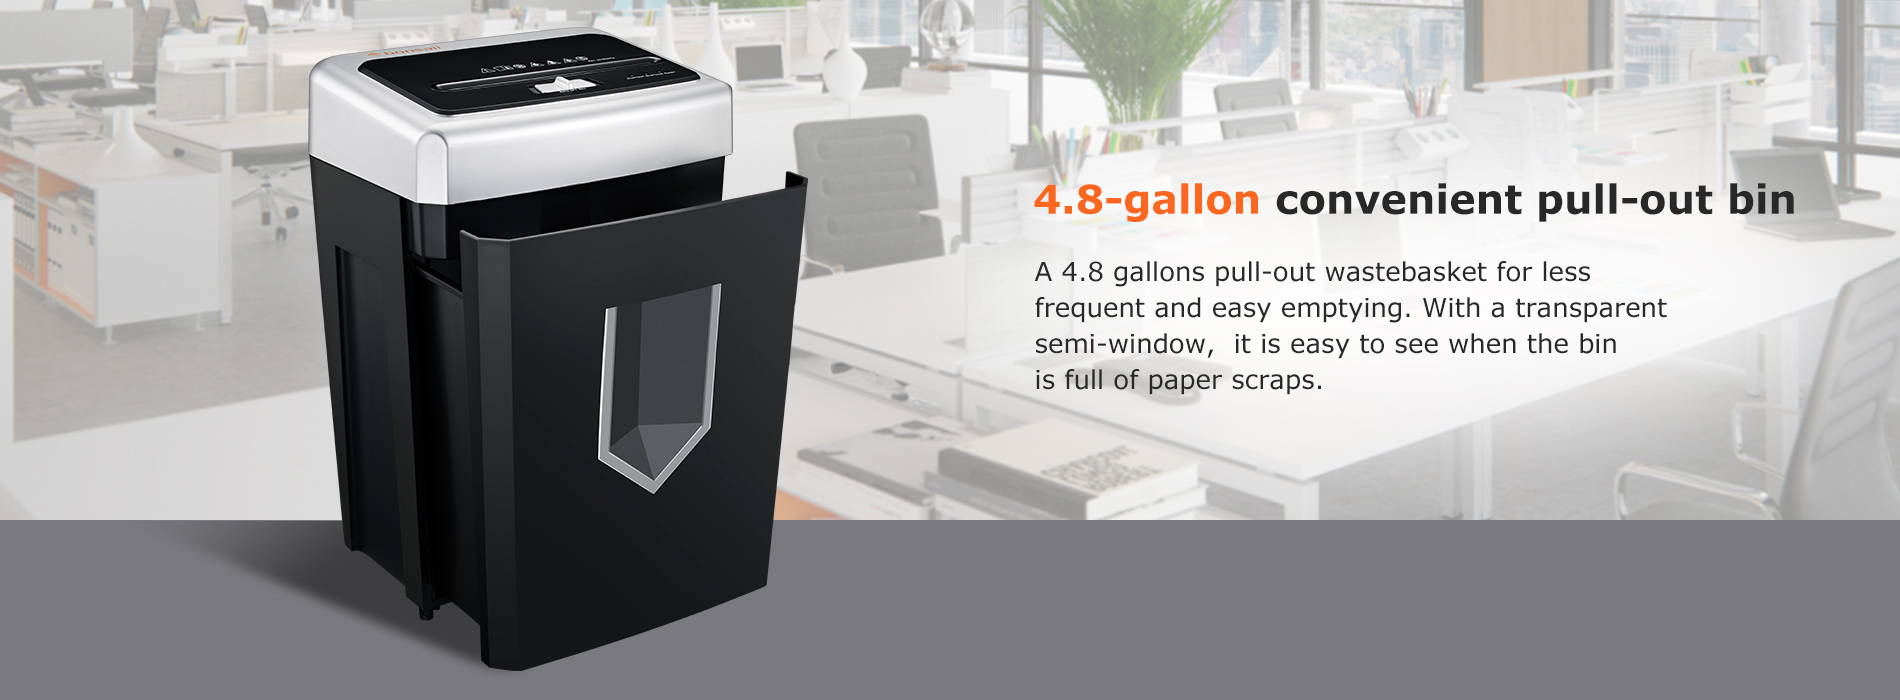 4.8-gallon convenient pull-out bin  A 4.8 gallons pull-out wastebasket for less frequent and easy emptying. With a transparent semi-window,  it is easy to see when the bin is full of paper scraps.